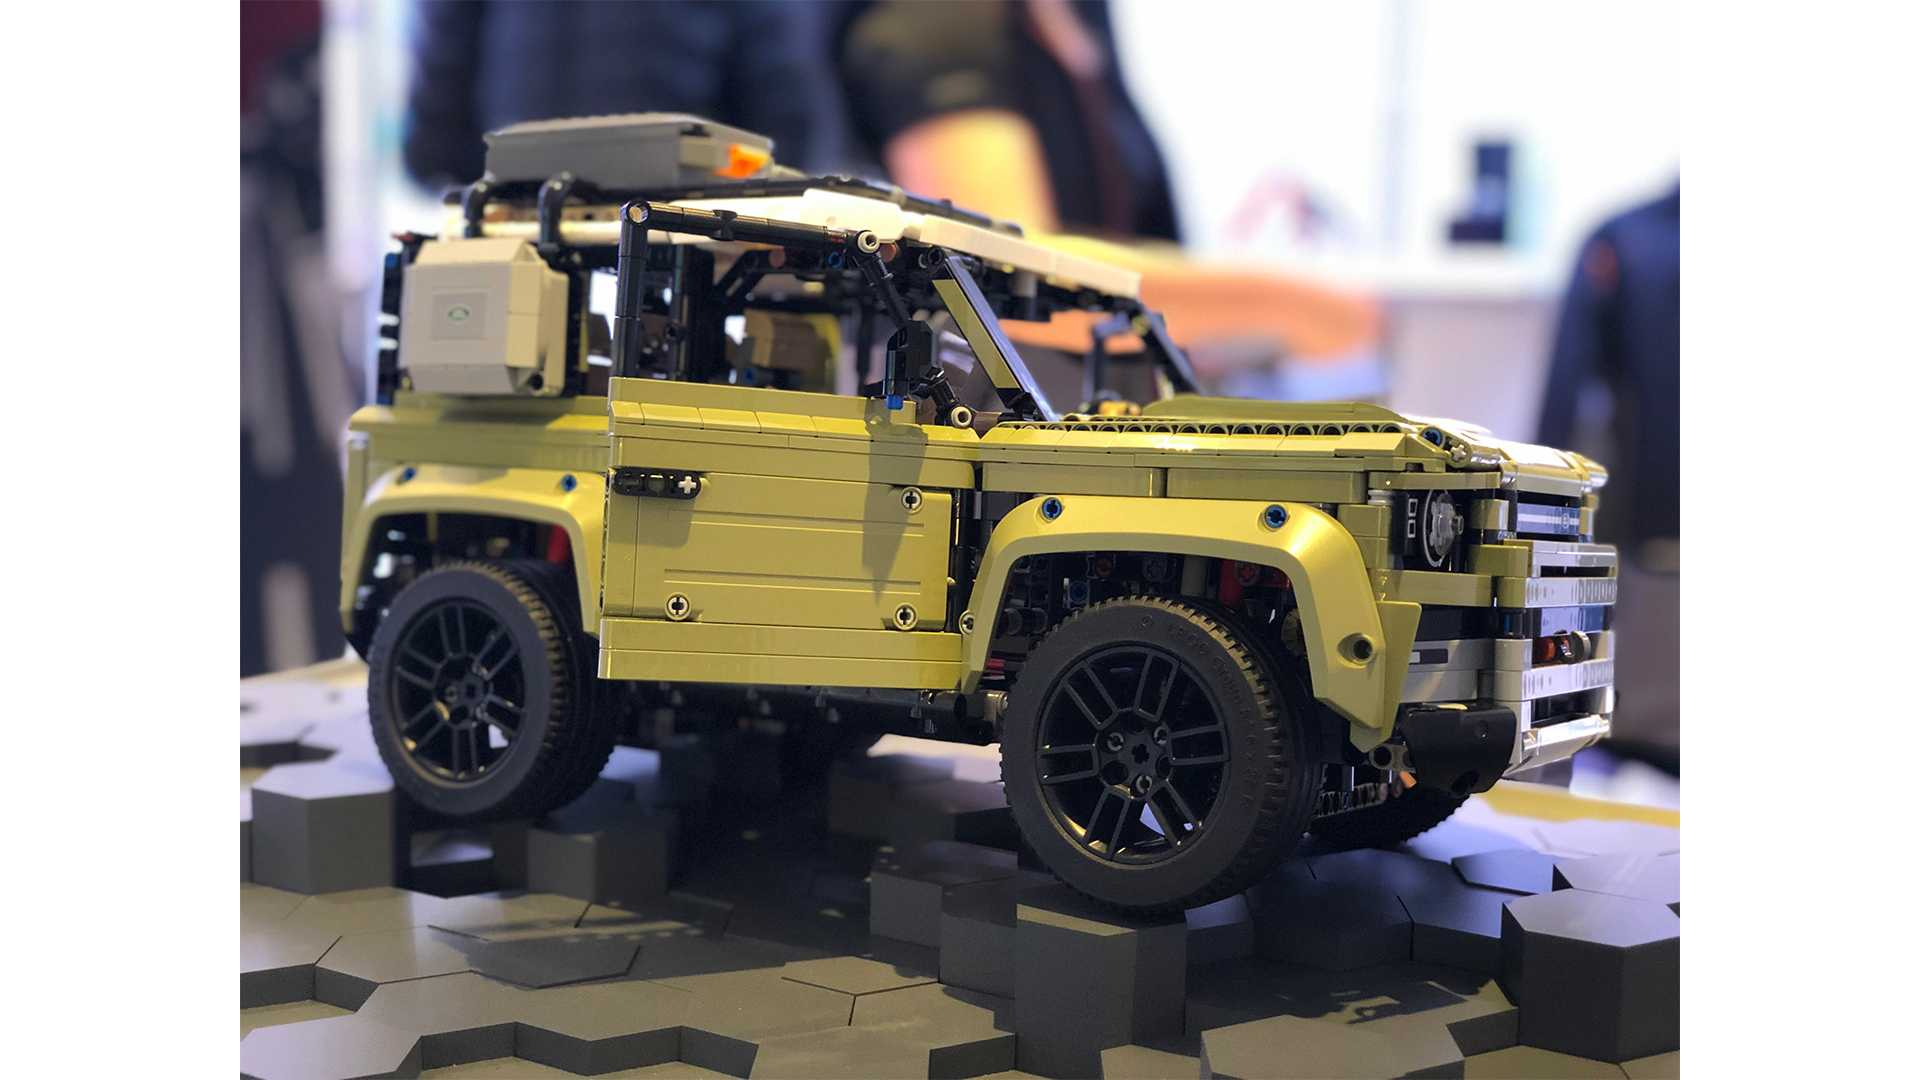 lego technic land rover defender 90 instructions